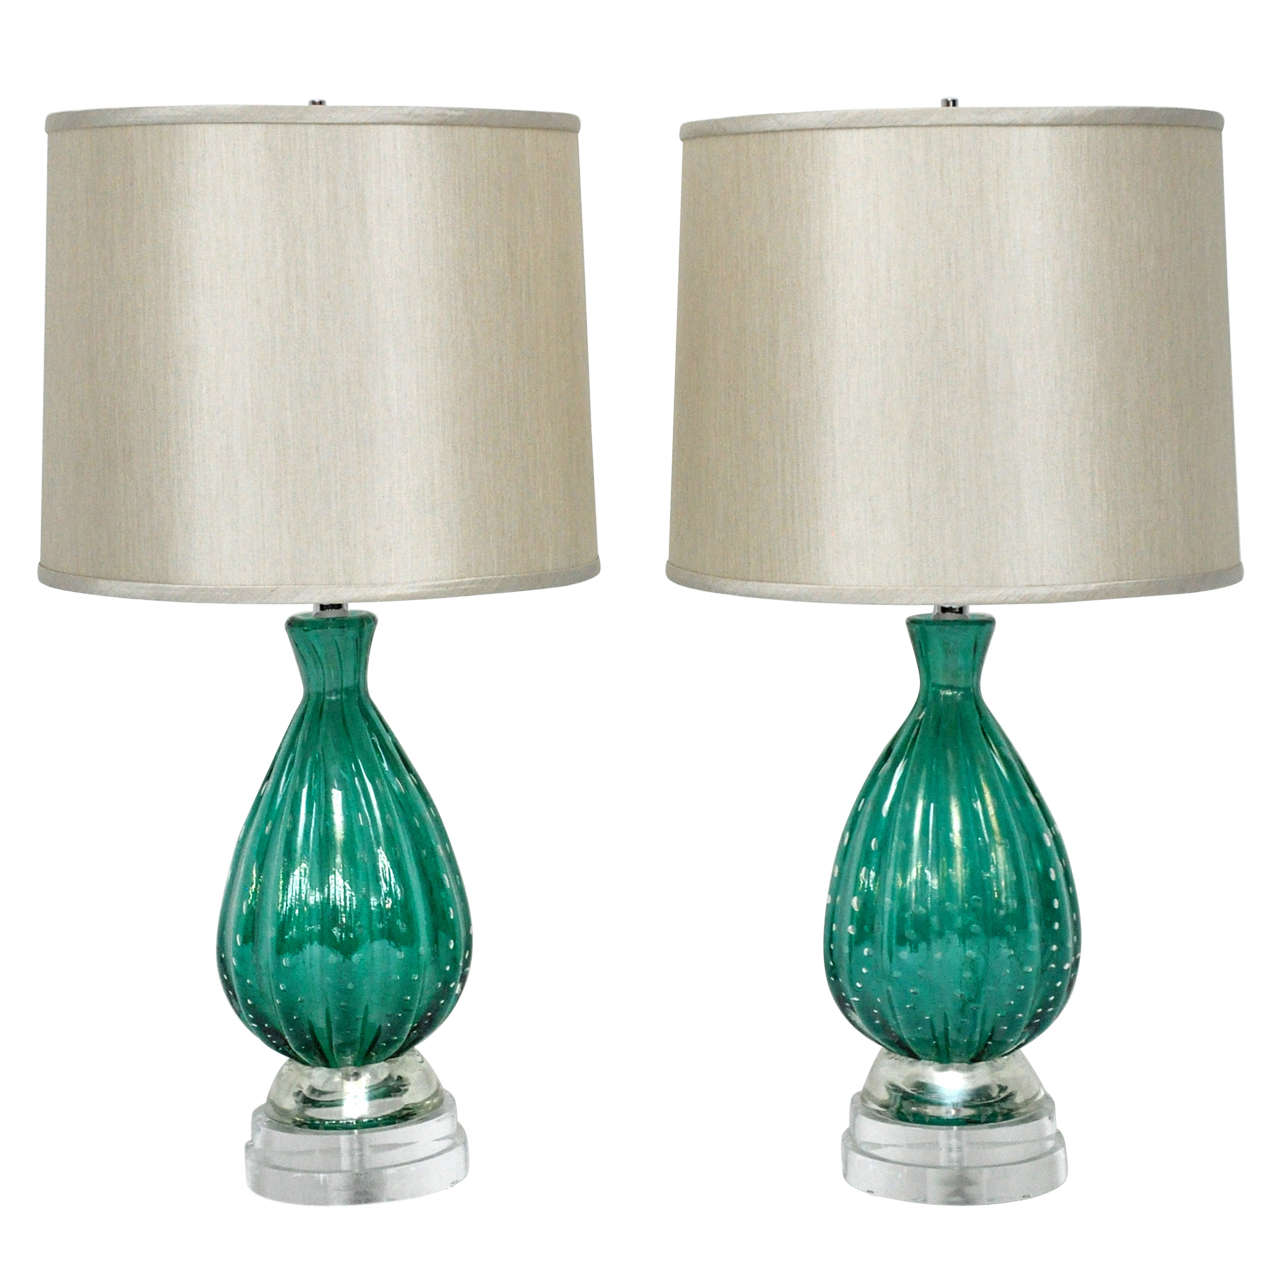 Turquoise Murano Glass Lamps by Barovier